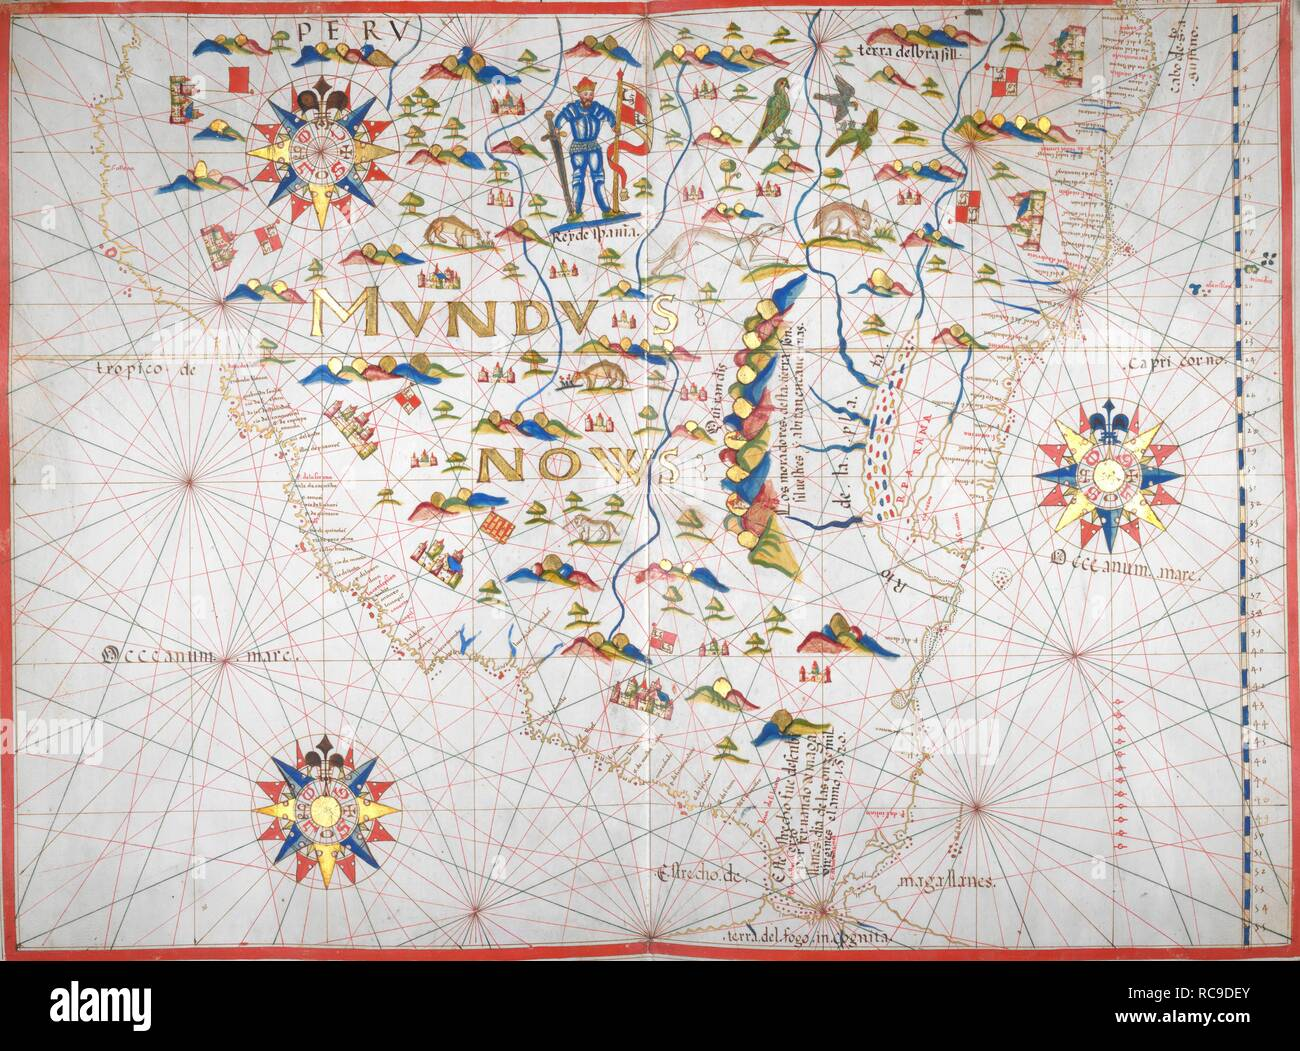 South Coast Of Spain Map.Southern Coast Of South America Portolano Spain Before 1600